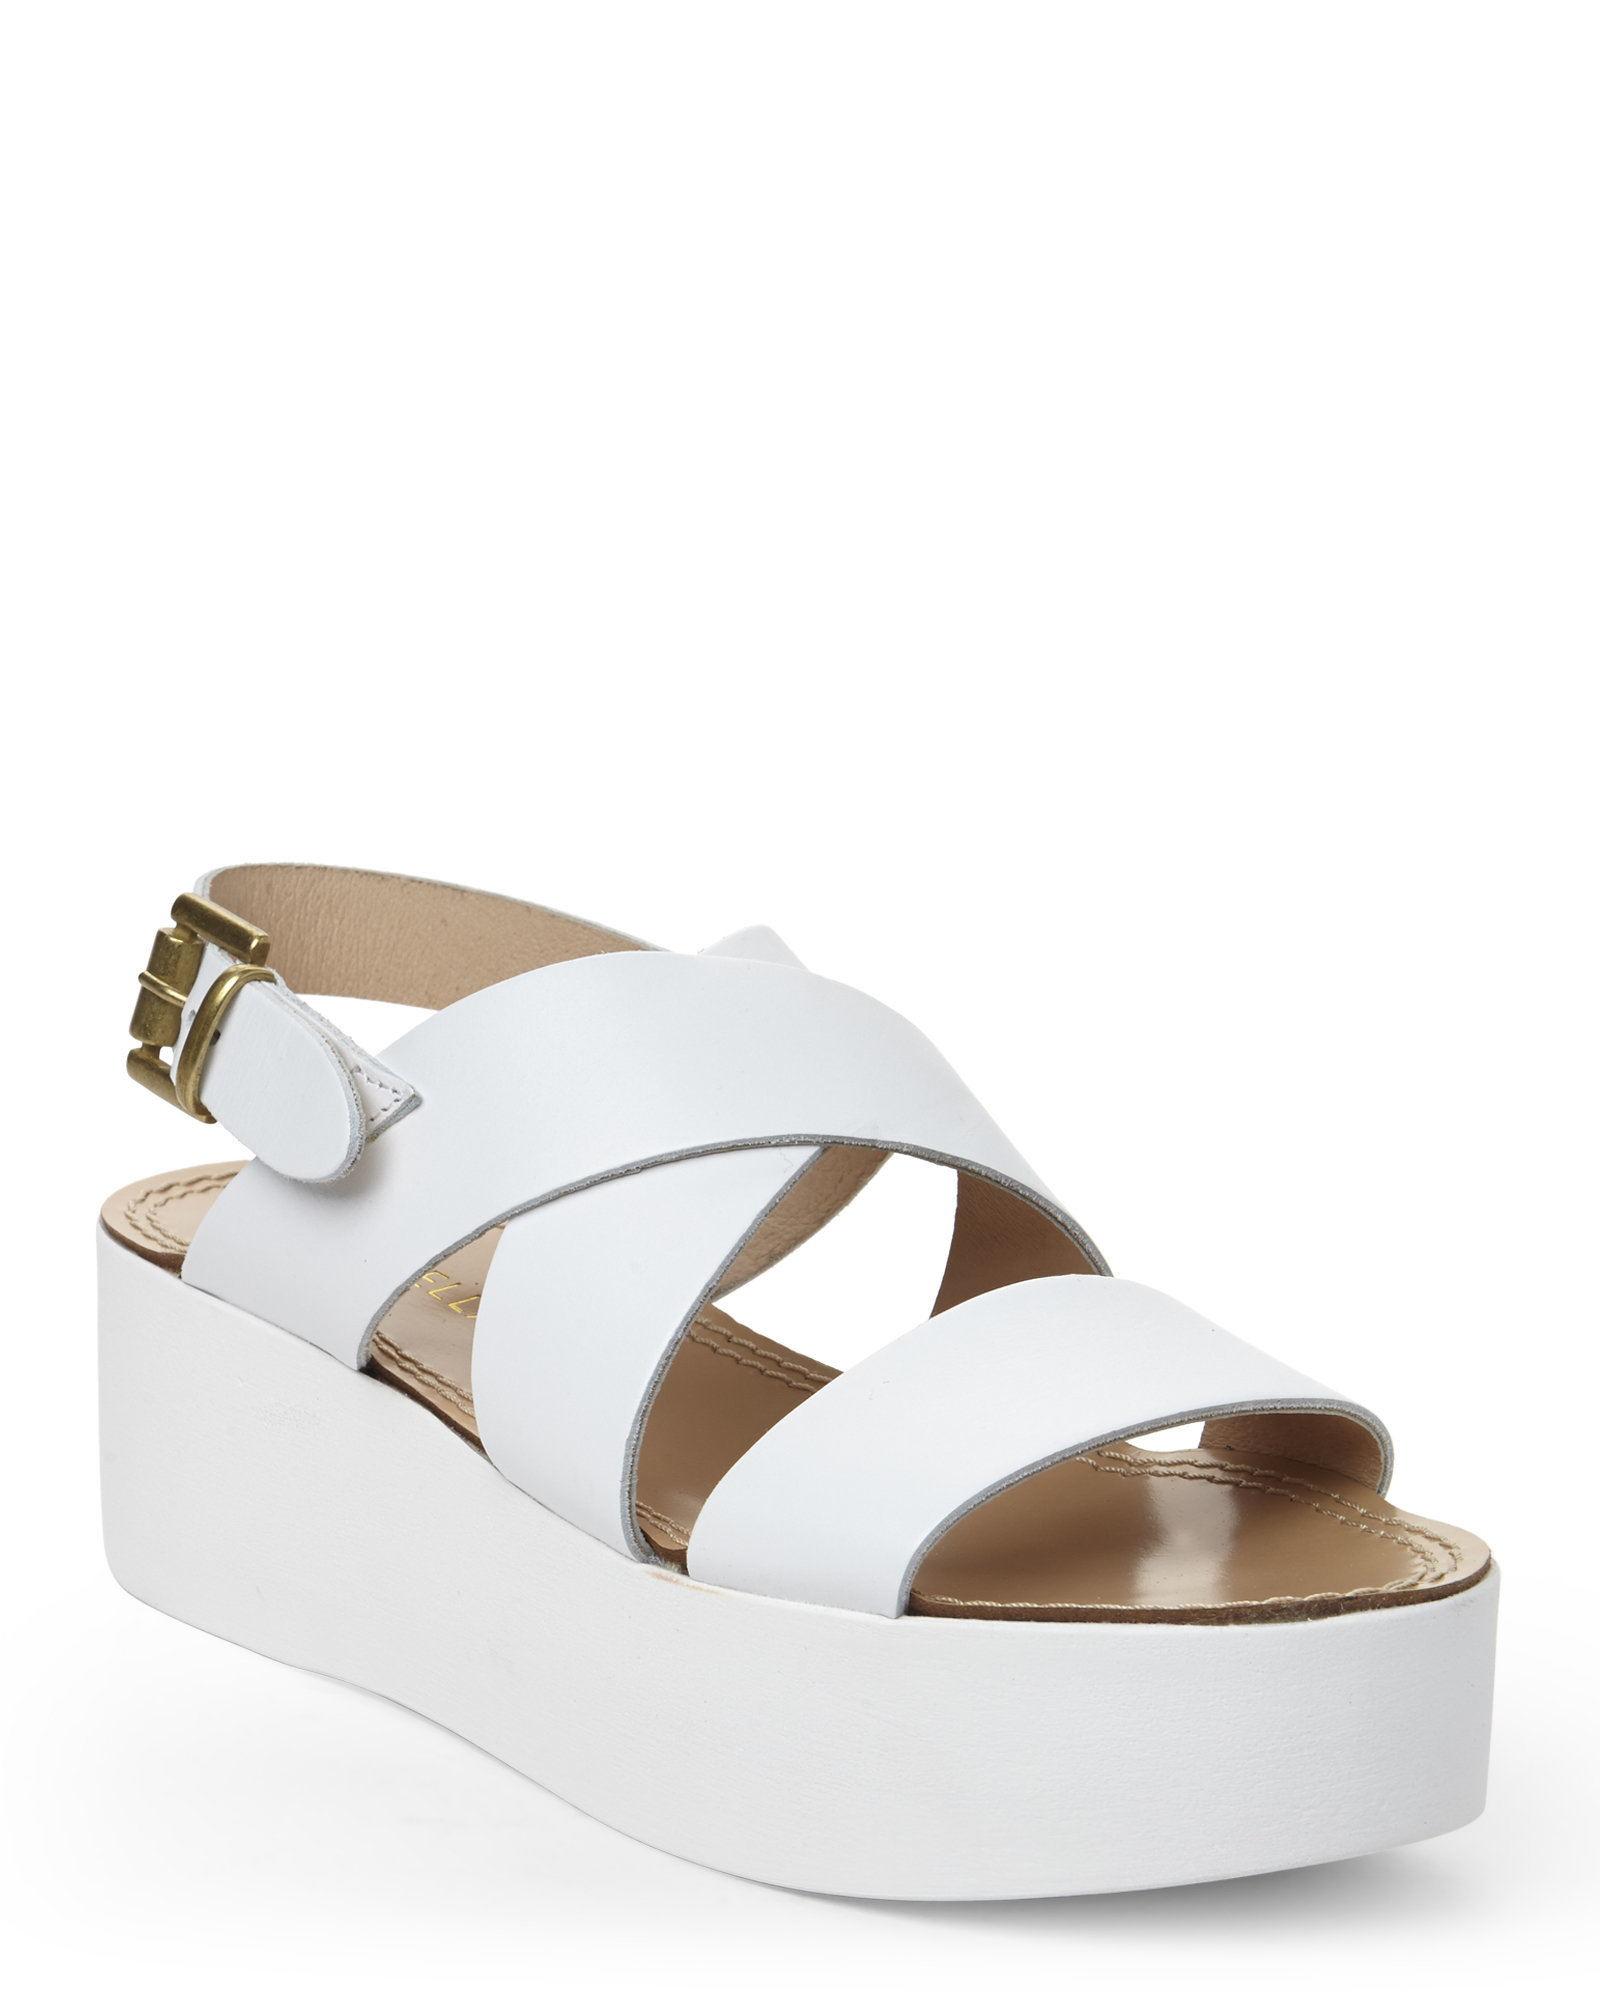 UGG Australia HANNELI WHITE LEATHER PLATFORM FLIP FLOP WOMENS SANDALS See more like this Clarks Women White Artisan Wedge Platform Heels Sandal Harwick Strappy Shoes Pre-Owned.